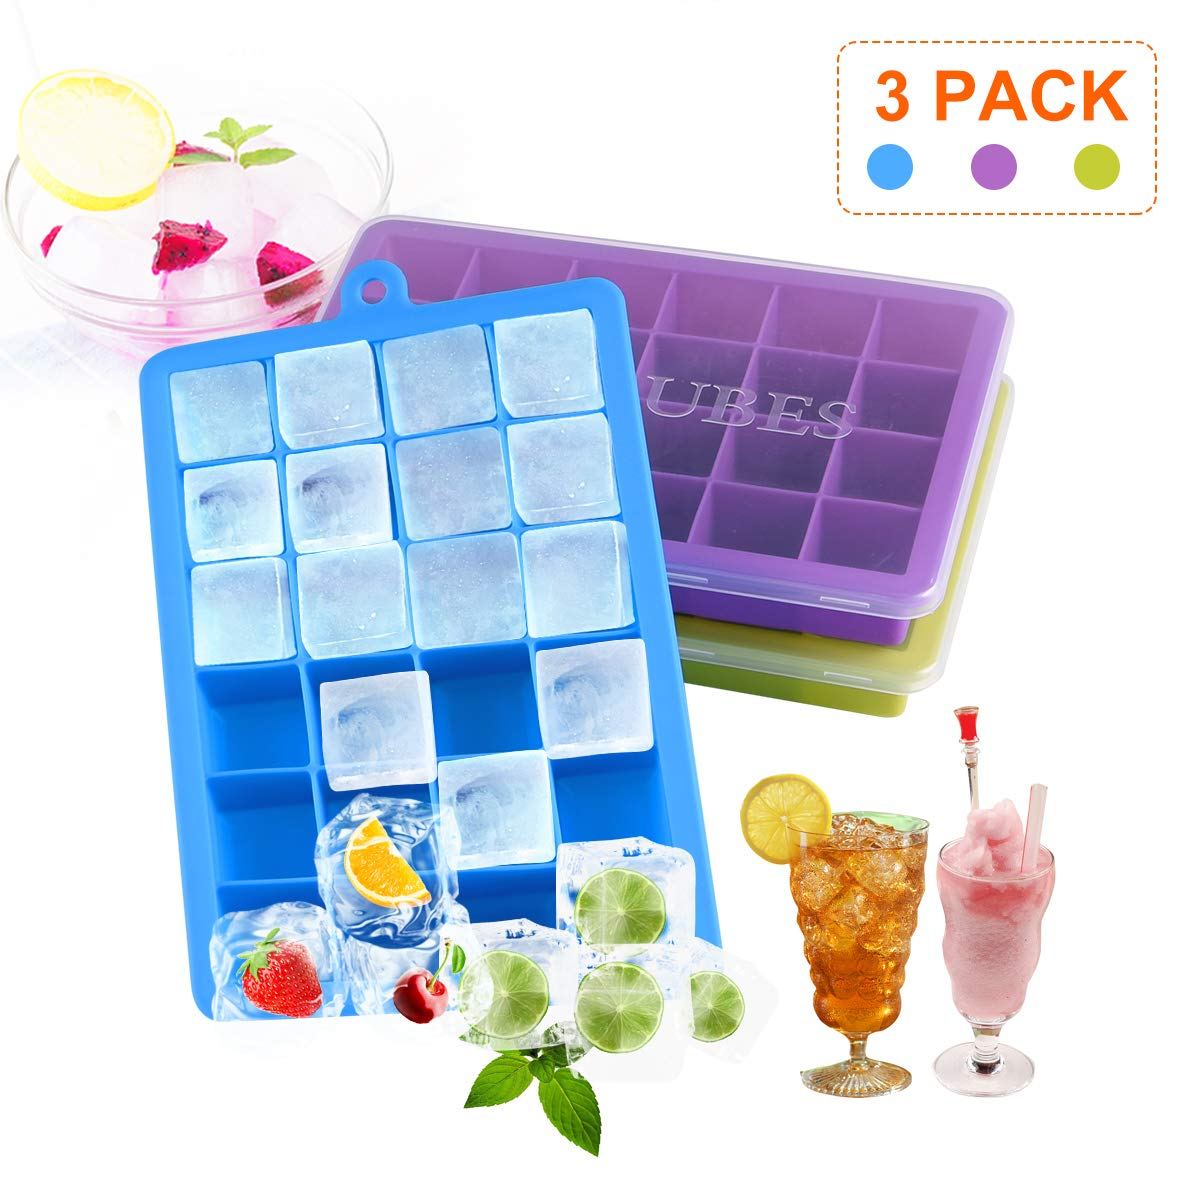 3 Packs Ice Cube Tray, Free Ice Moulds Silicone with Non-Spill Lid, Best Ice Moulds for Freezer, Baby Food, Water, Cocktail and Other Drink